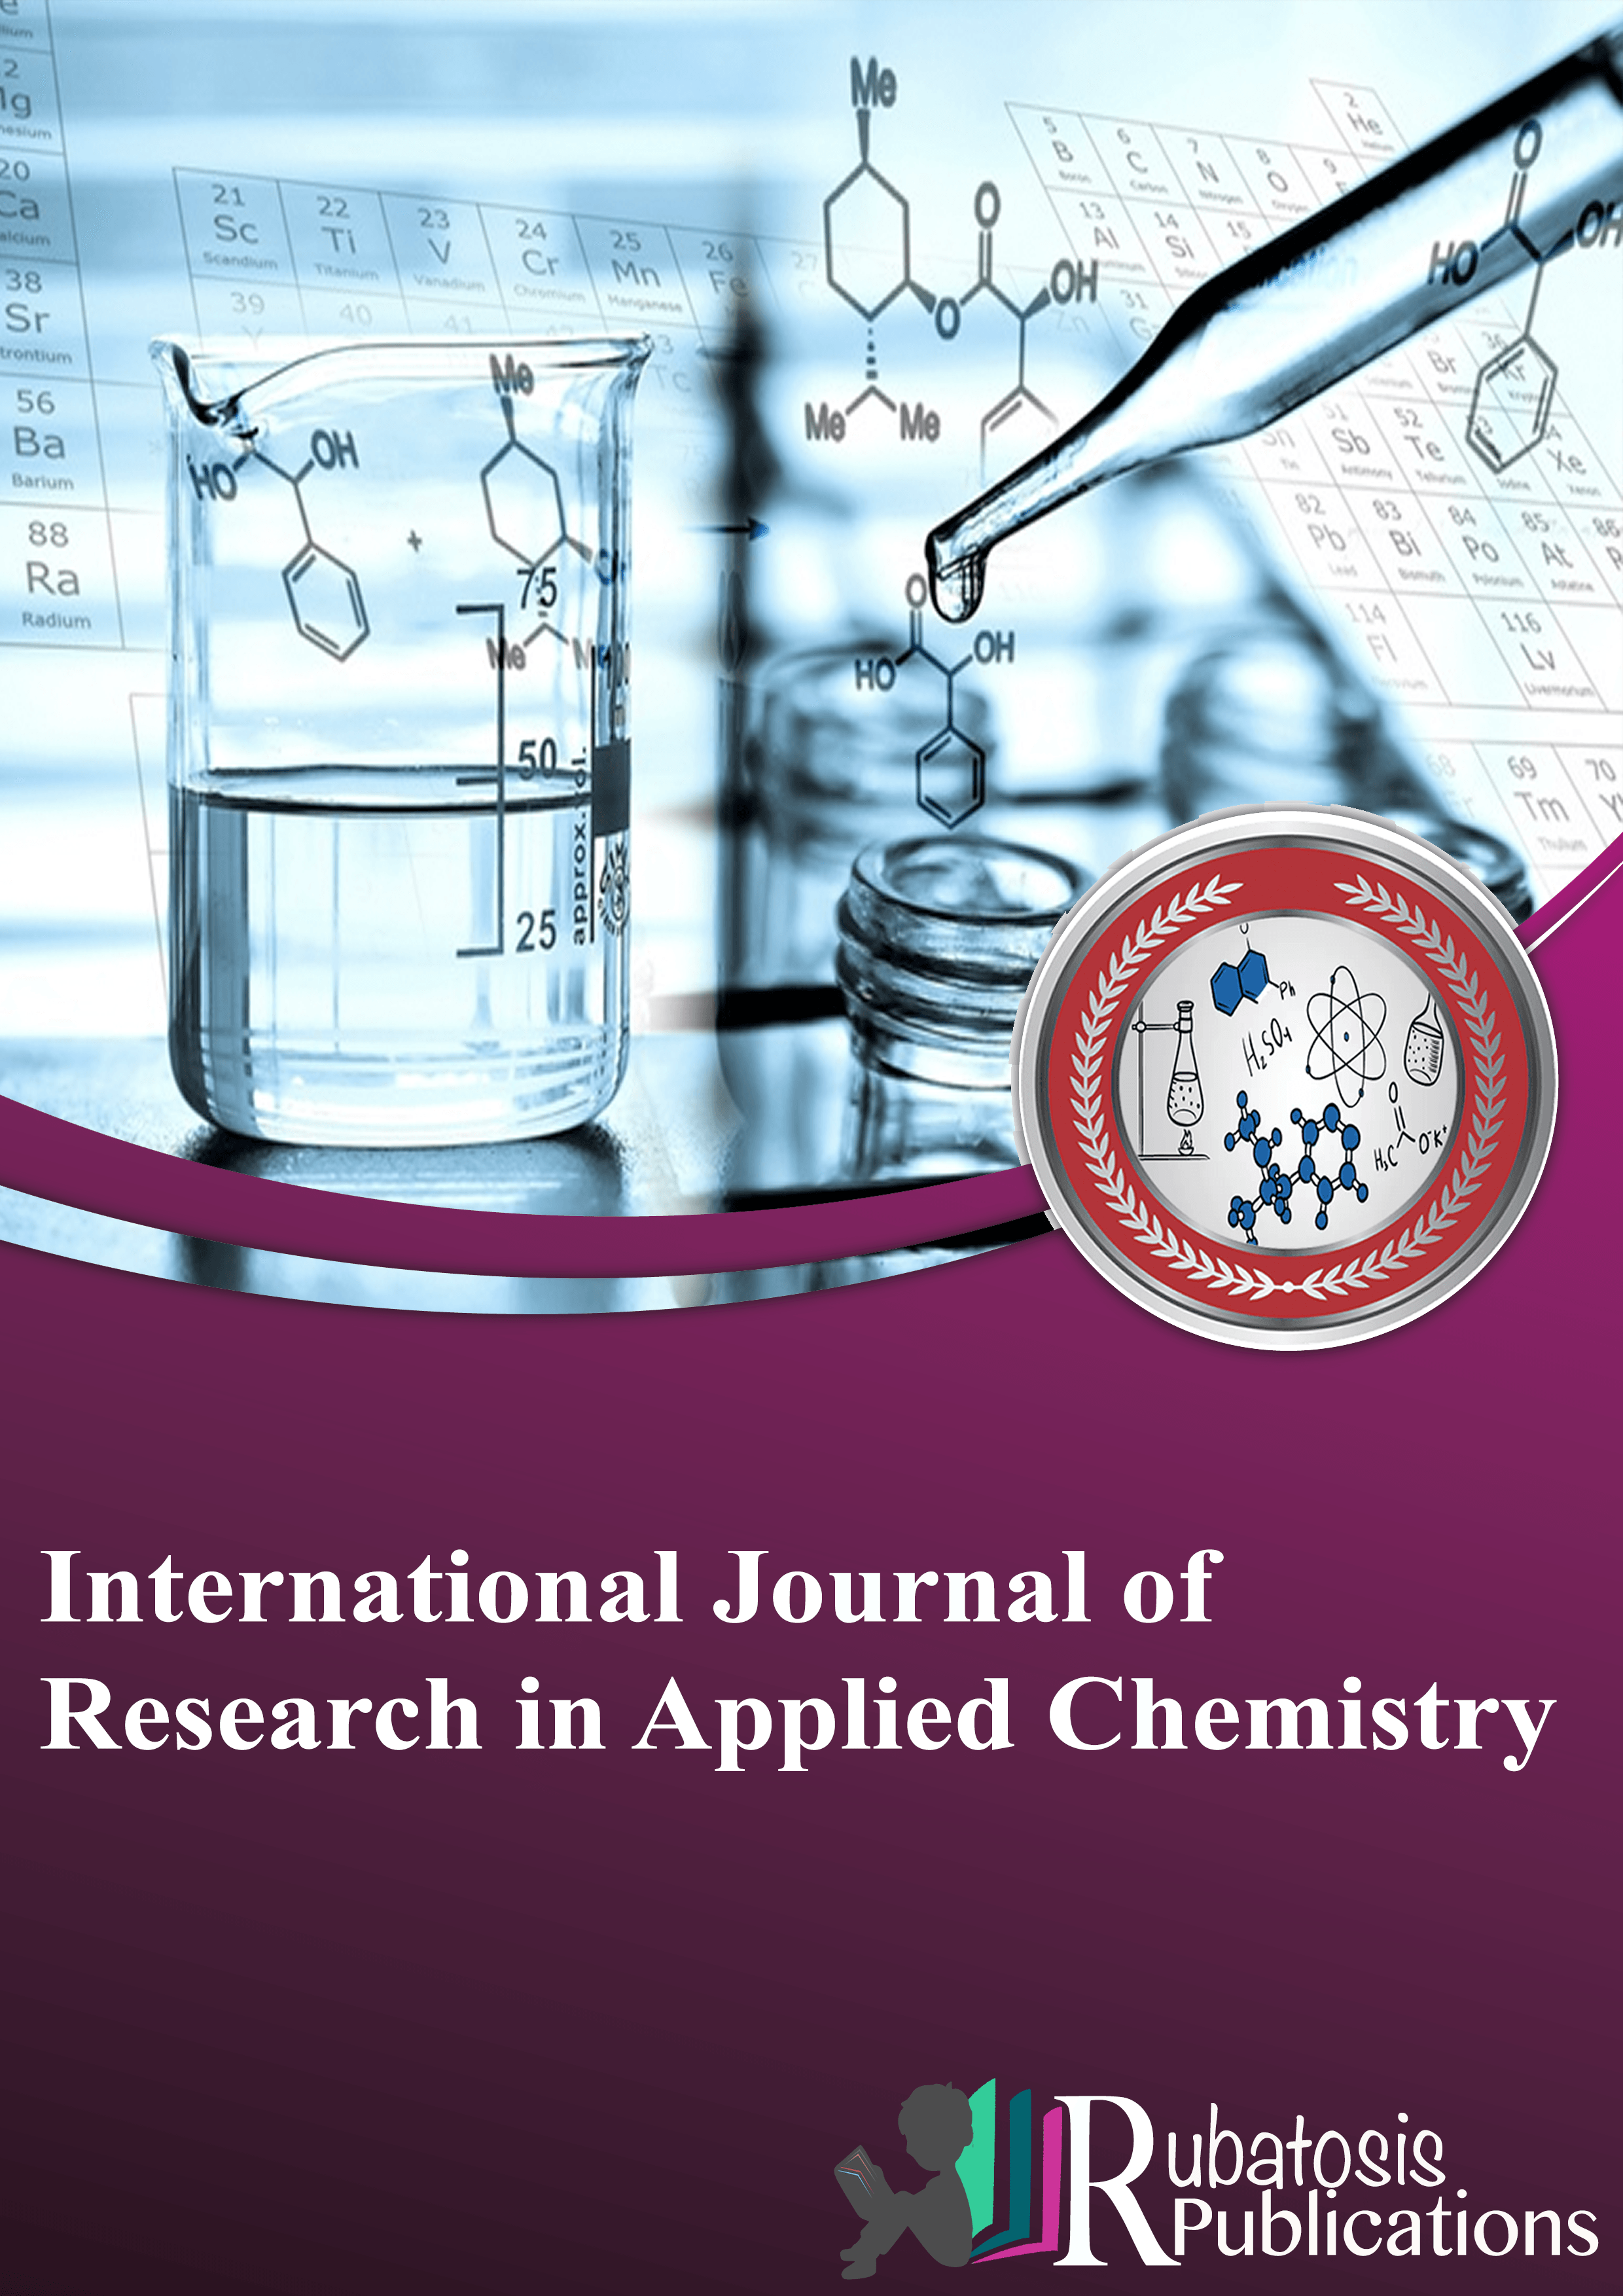 International Journal of Research in Applied Chemistry